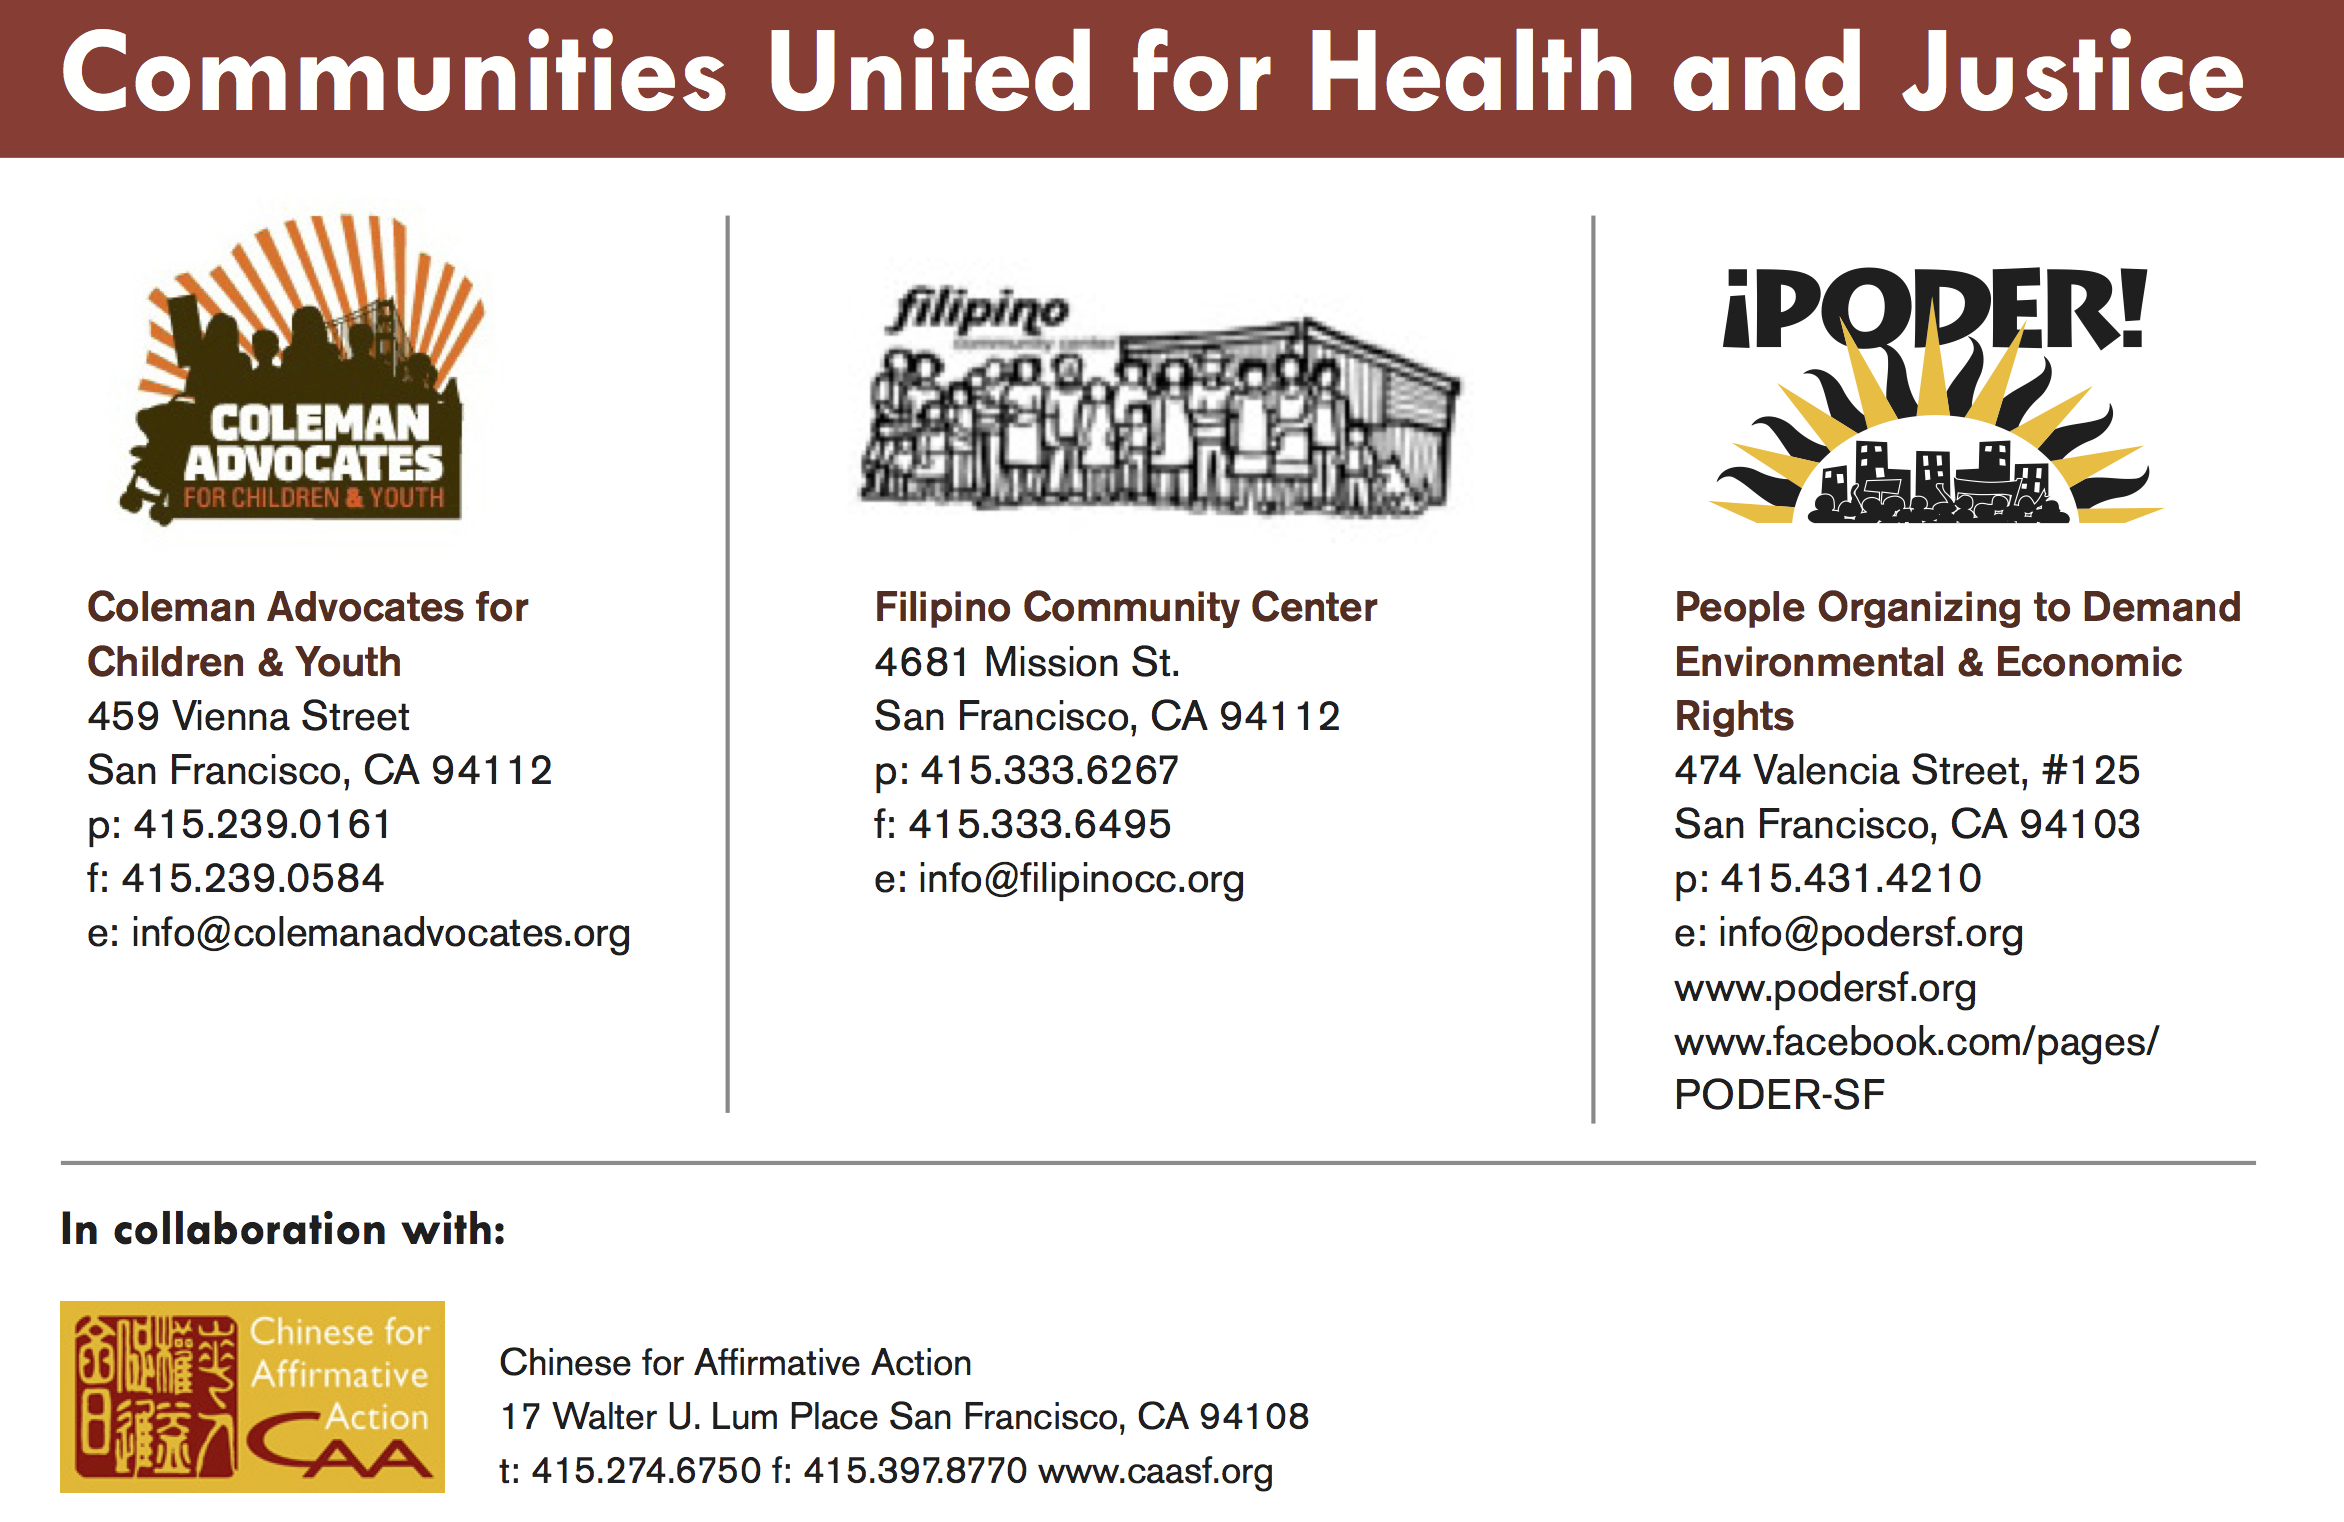 Communities United for Health and Justice